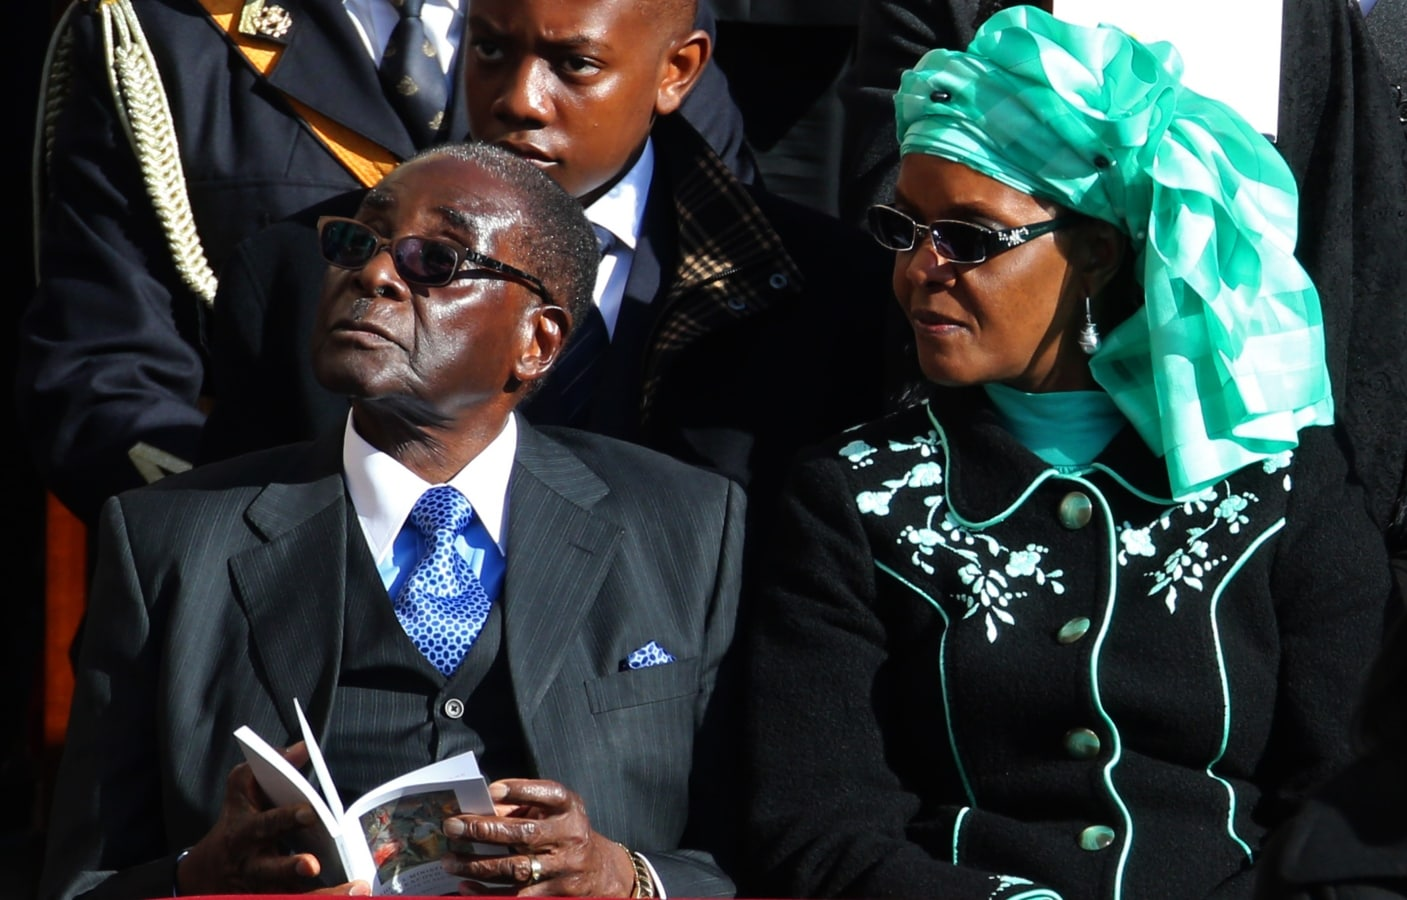 Mugabe faces assault arrest if she travels to South Africa